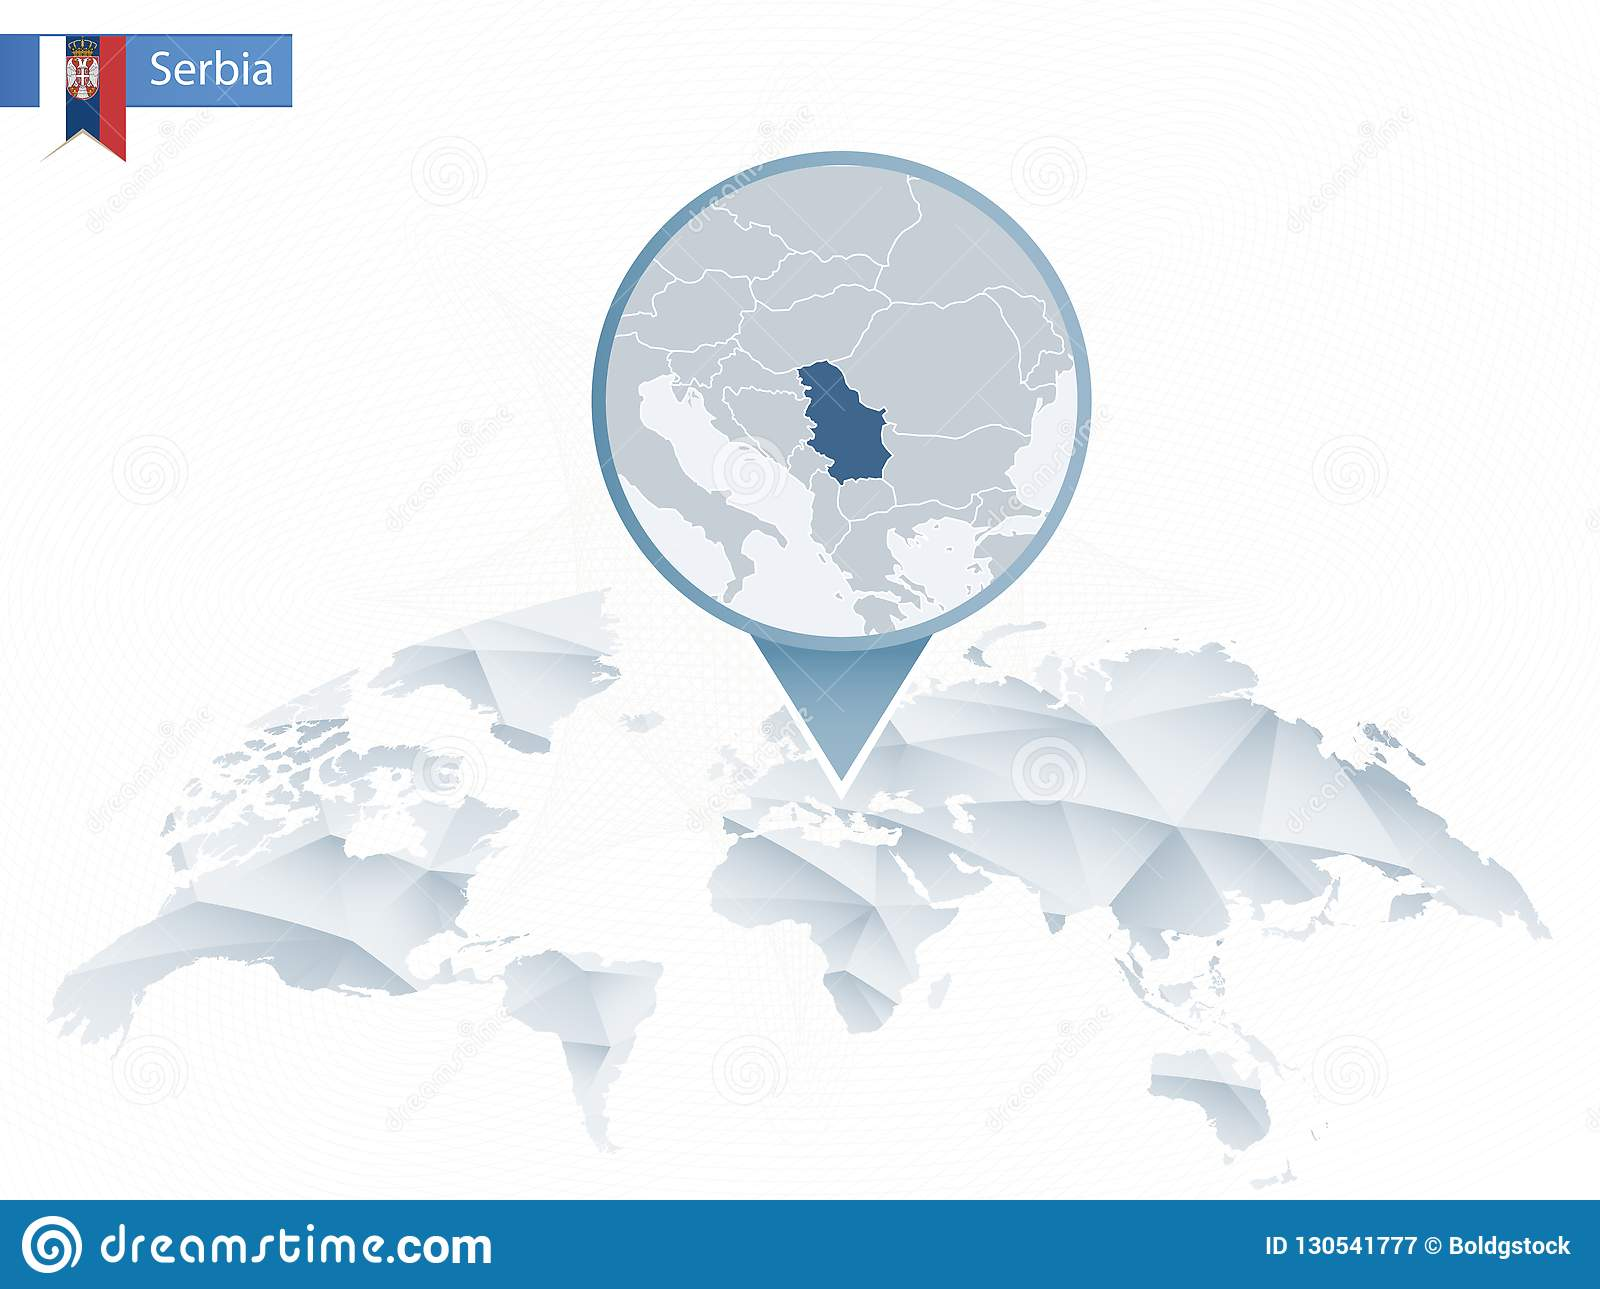 Abstract Rounded World Map With Pinned Detailed Serbia Map Stock